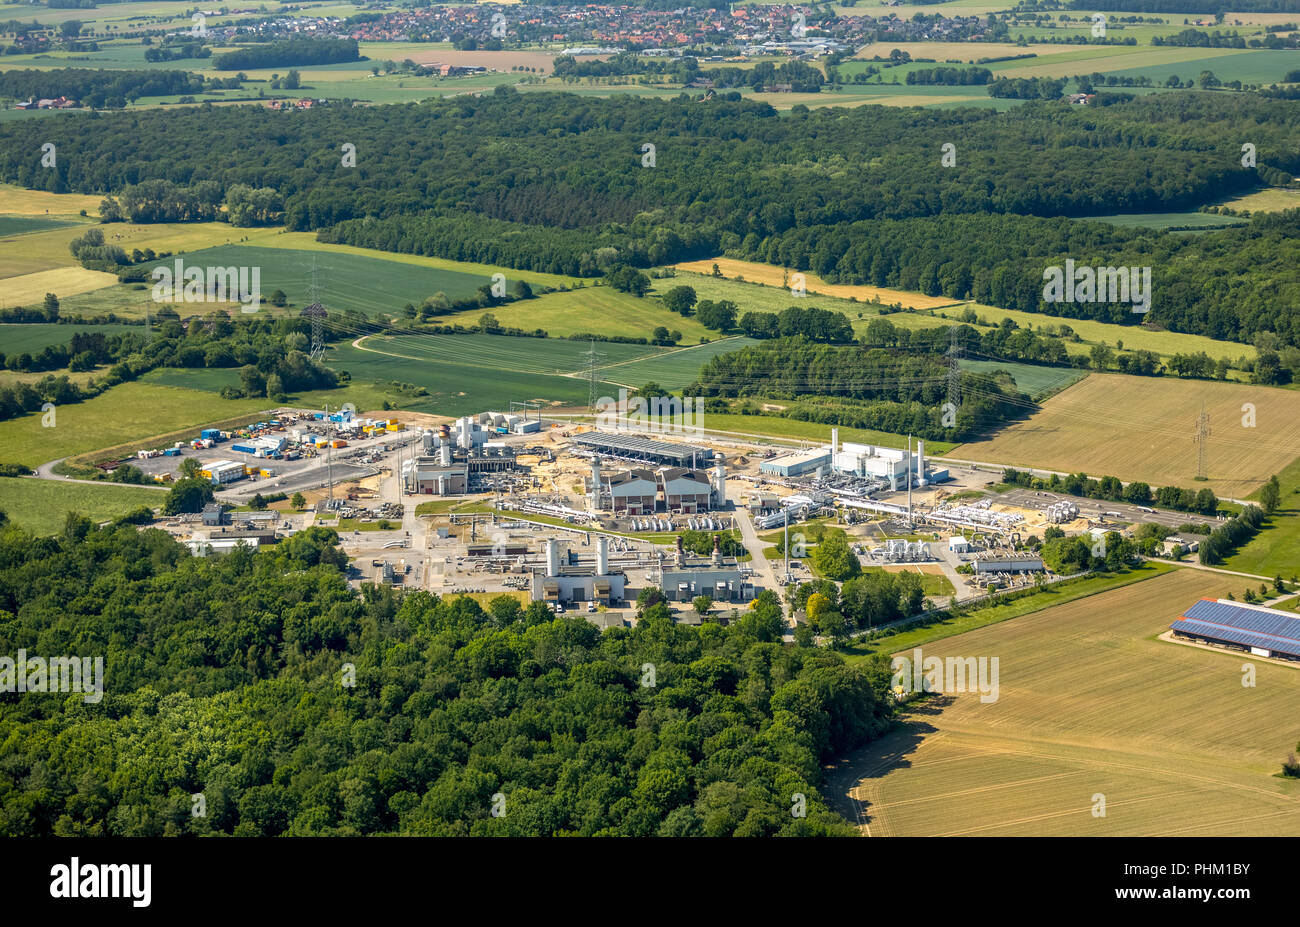 Aerial view, natural gas compressor station in Ehringhausen, Open Grid Europe, filters, cooler and systems for internal gas distribution, gas supply c Stock Photo